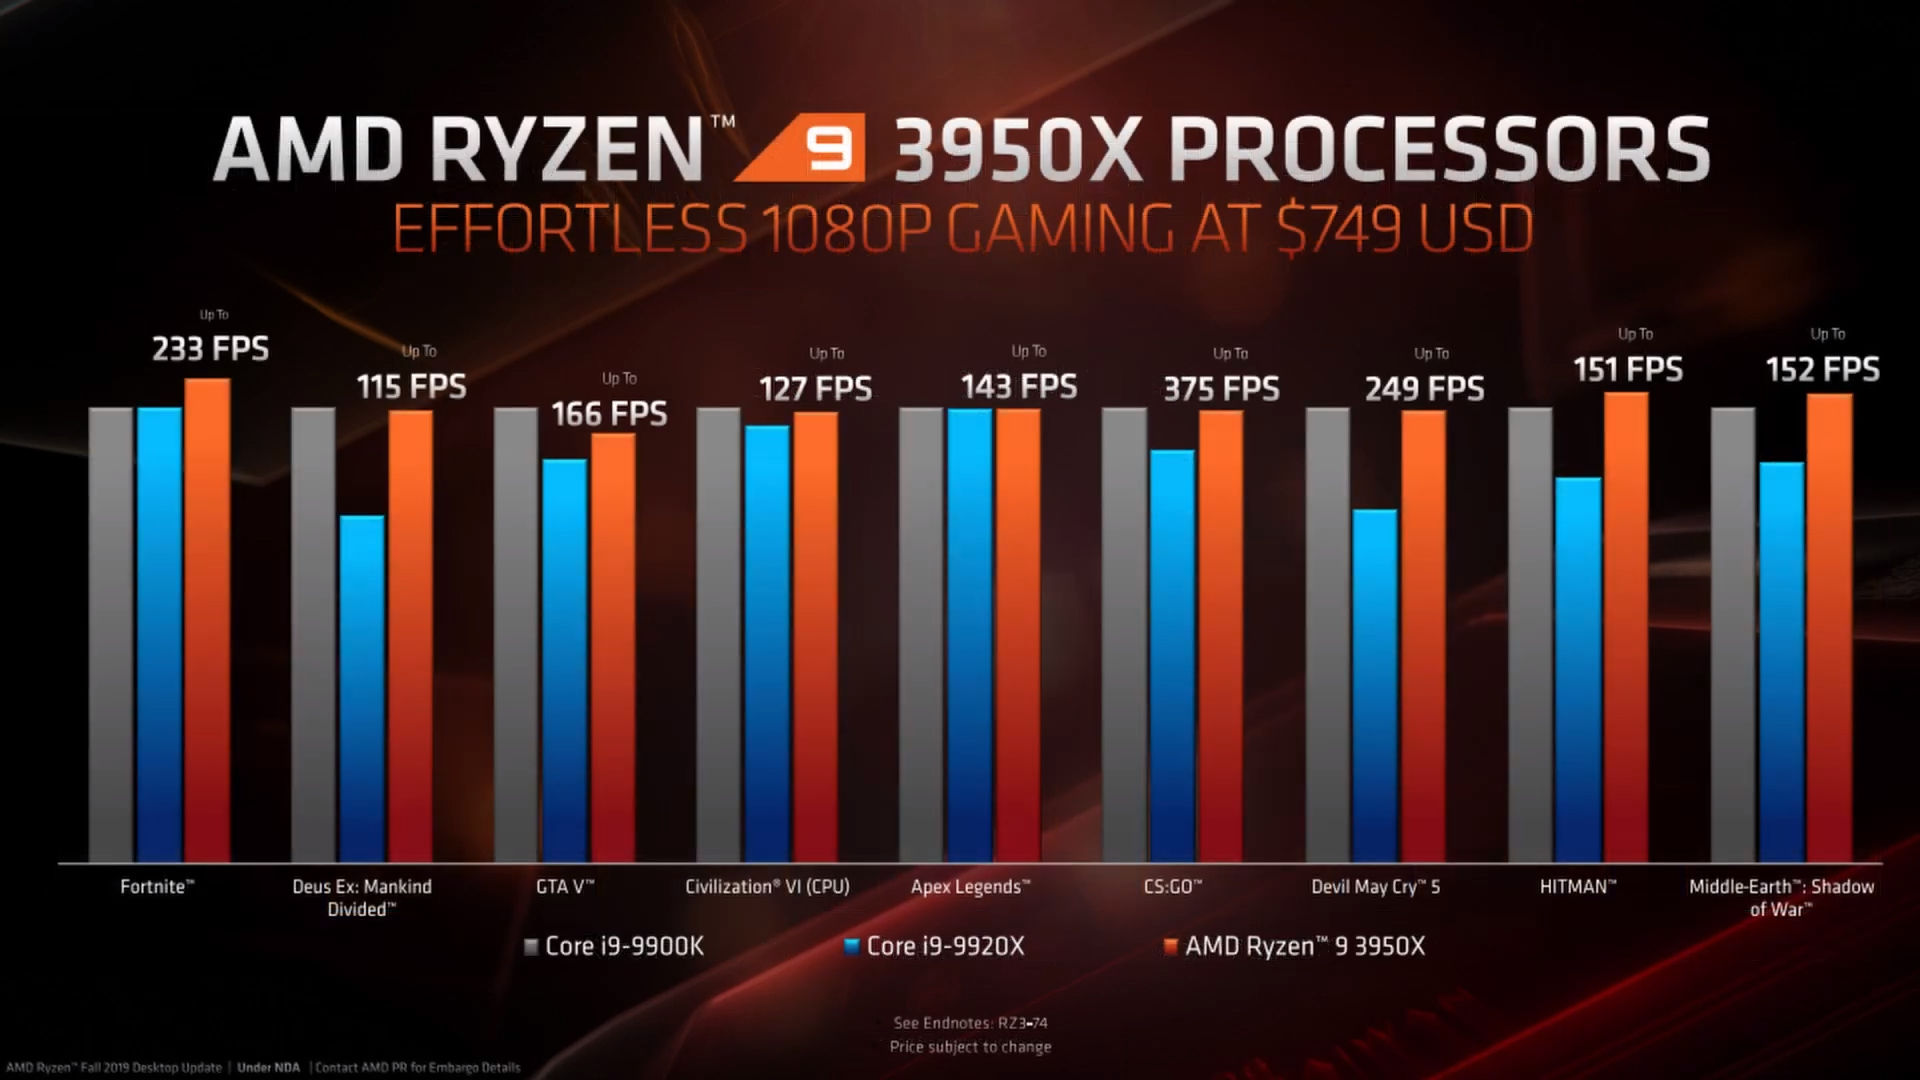 Amd Ryzen 9 3950x 16 Core Flagship Athlon 3000g Cpus Announced